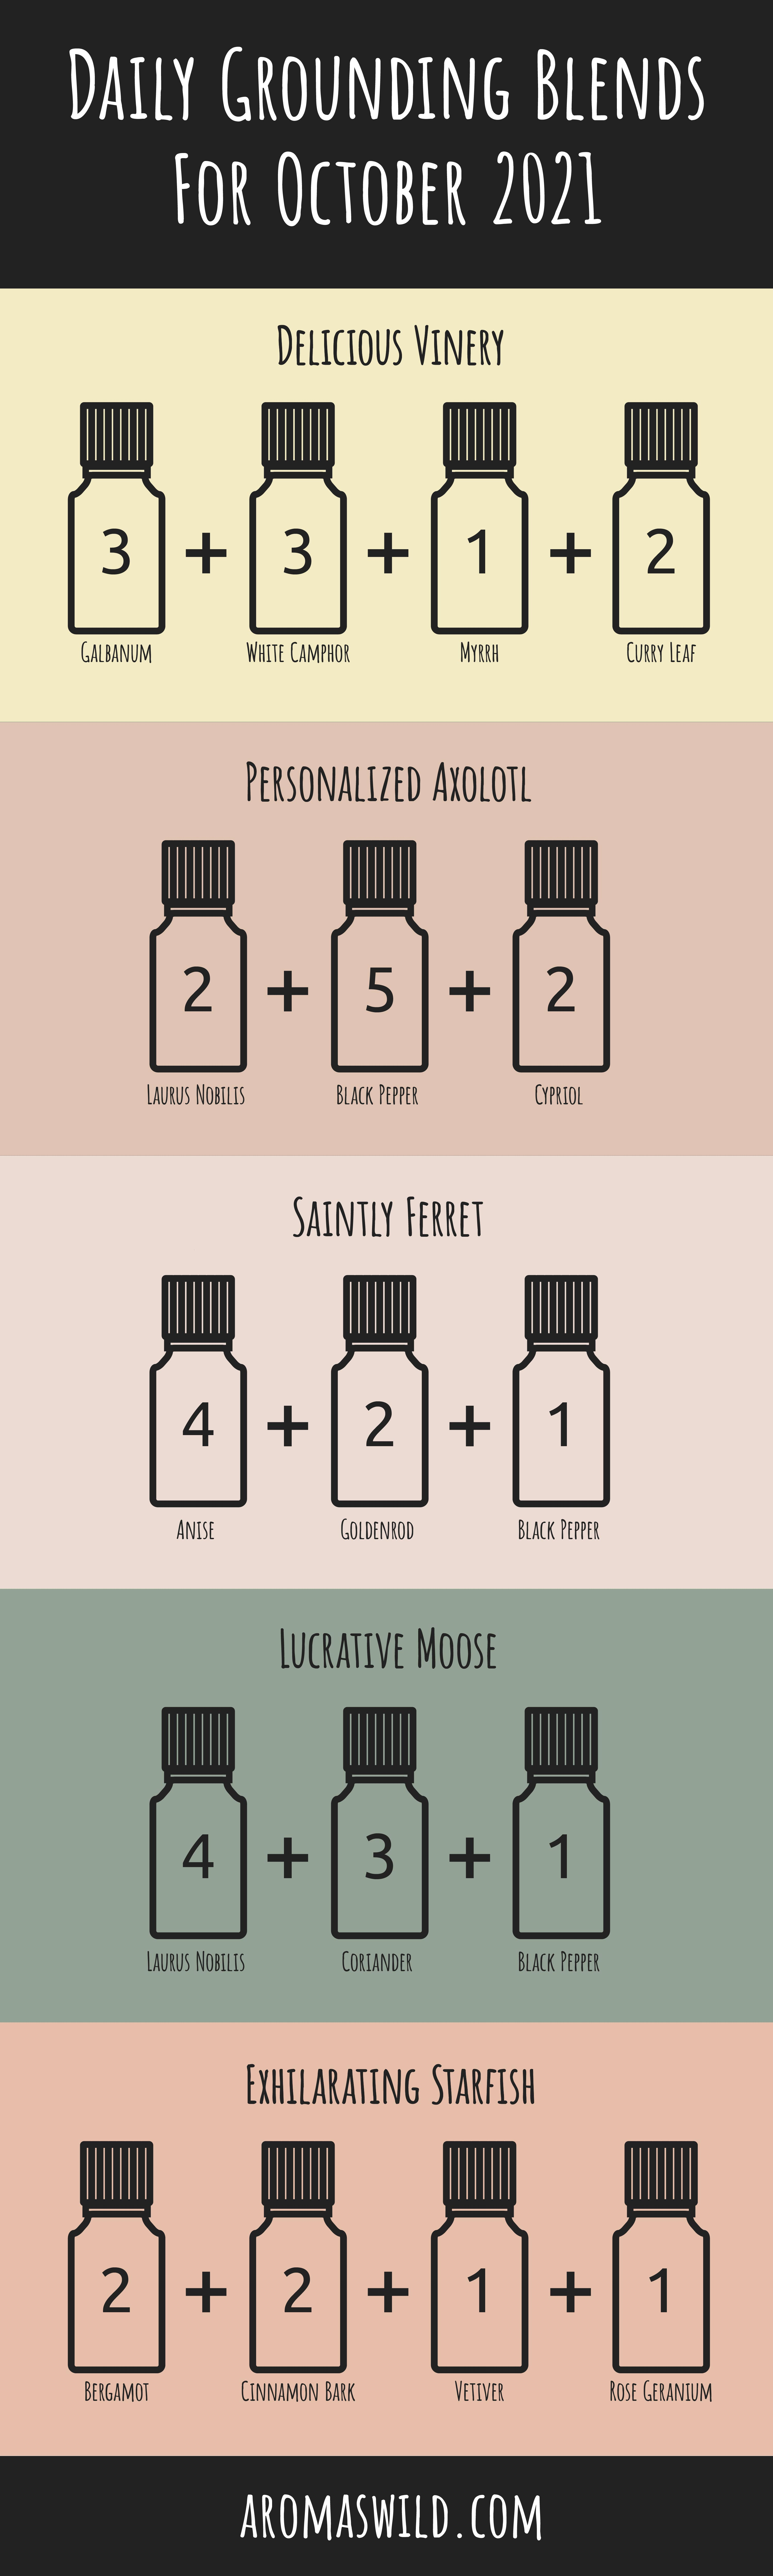 DIY Diffuser Essential Oils To Help Diffuser – Daily Grounding Blends For 23 October 2021